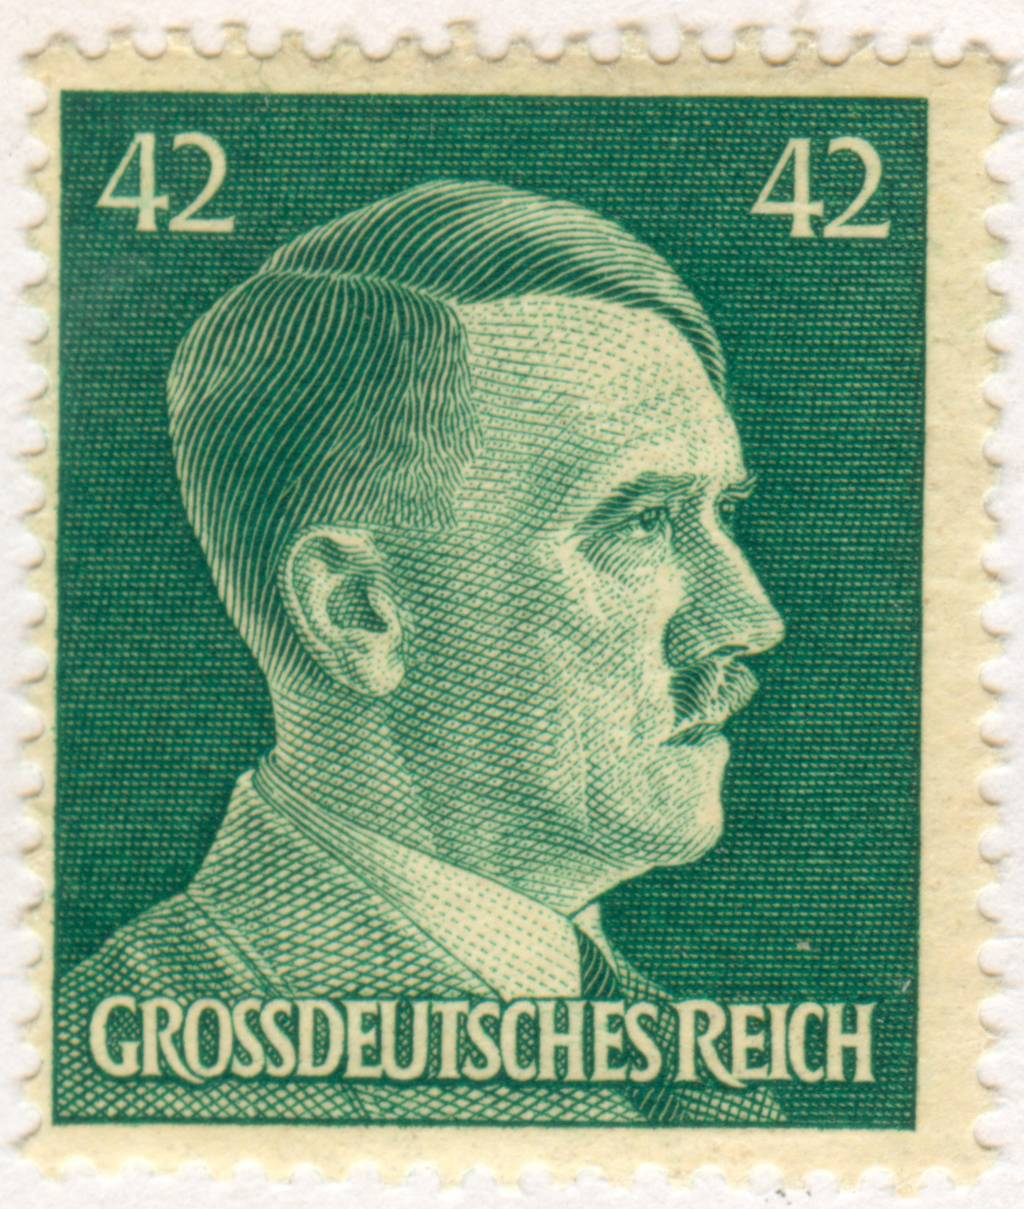 between world war 1 to world war 2 culture and politics stamp of the greater german reich depicting adolf hitler as the fuumlhrer of the reich